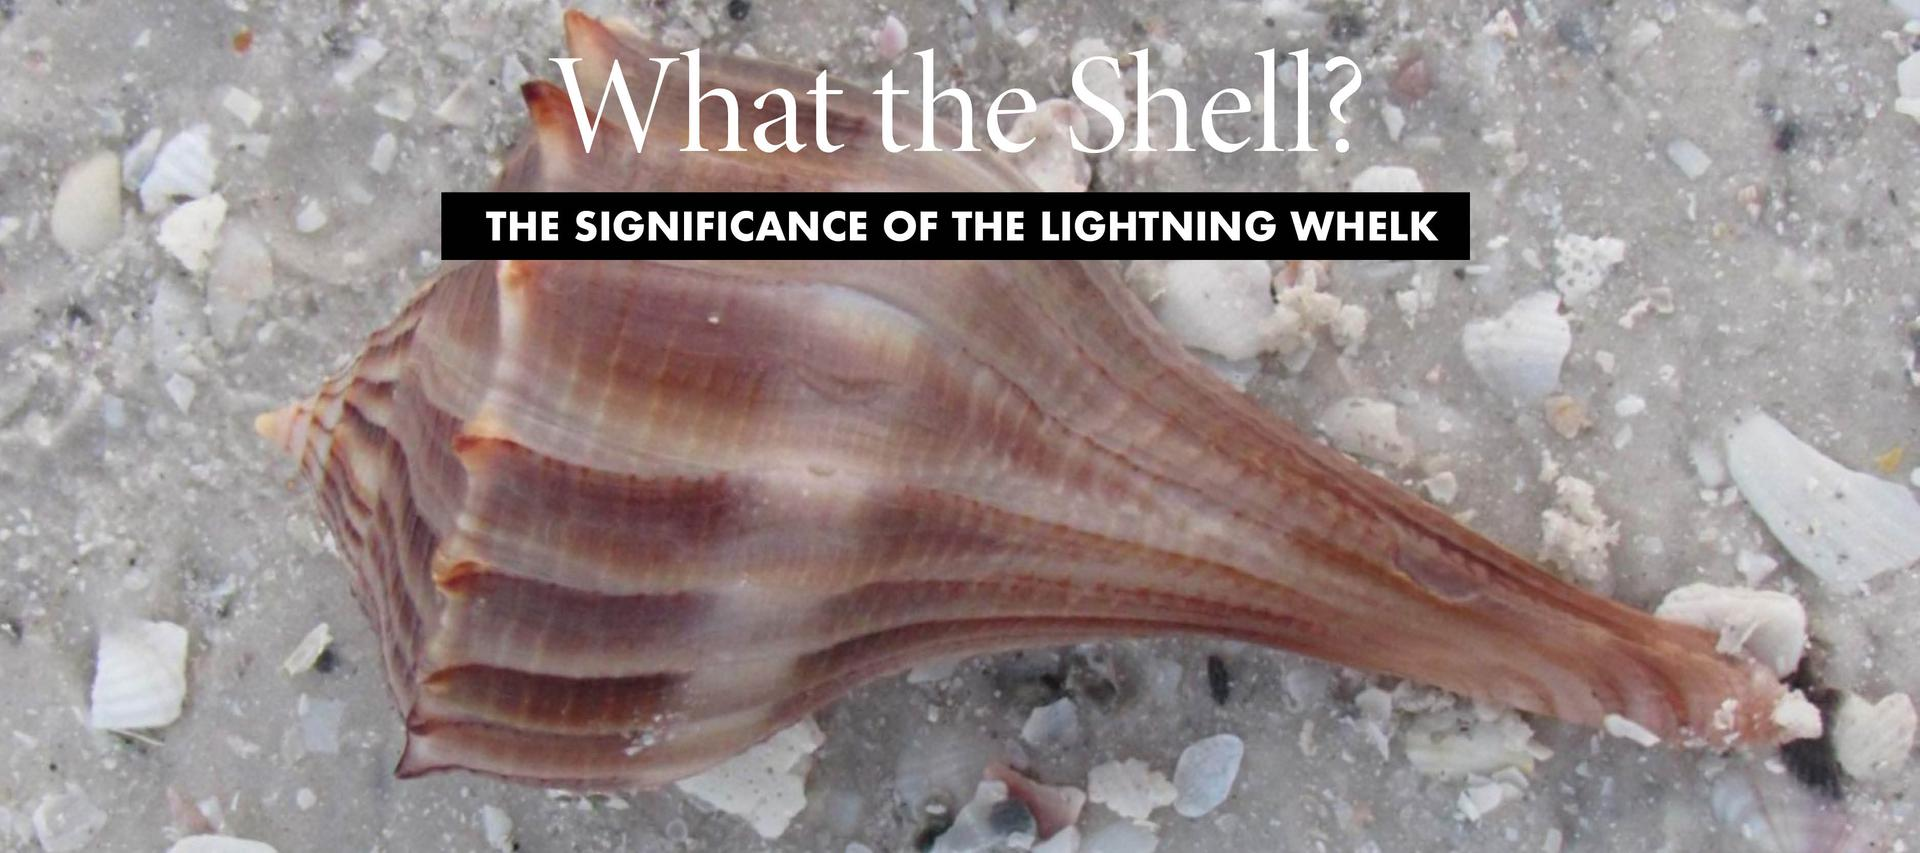 So Charleston: Lightning Whelk